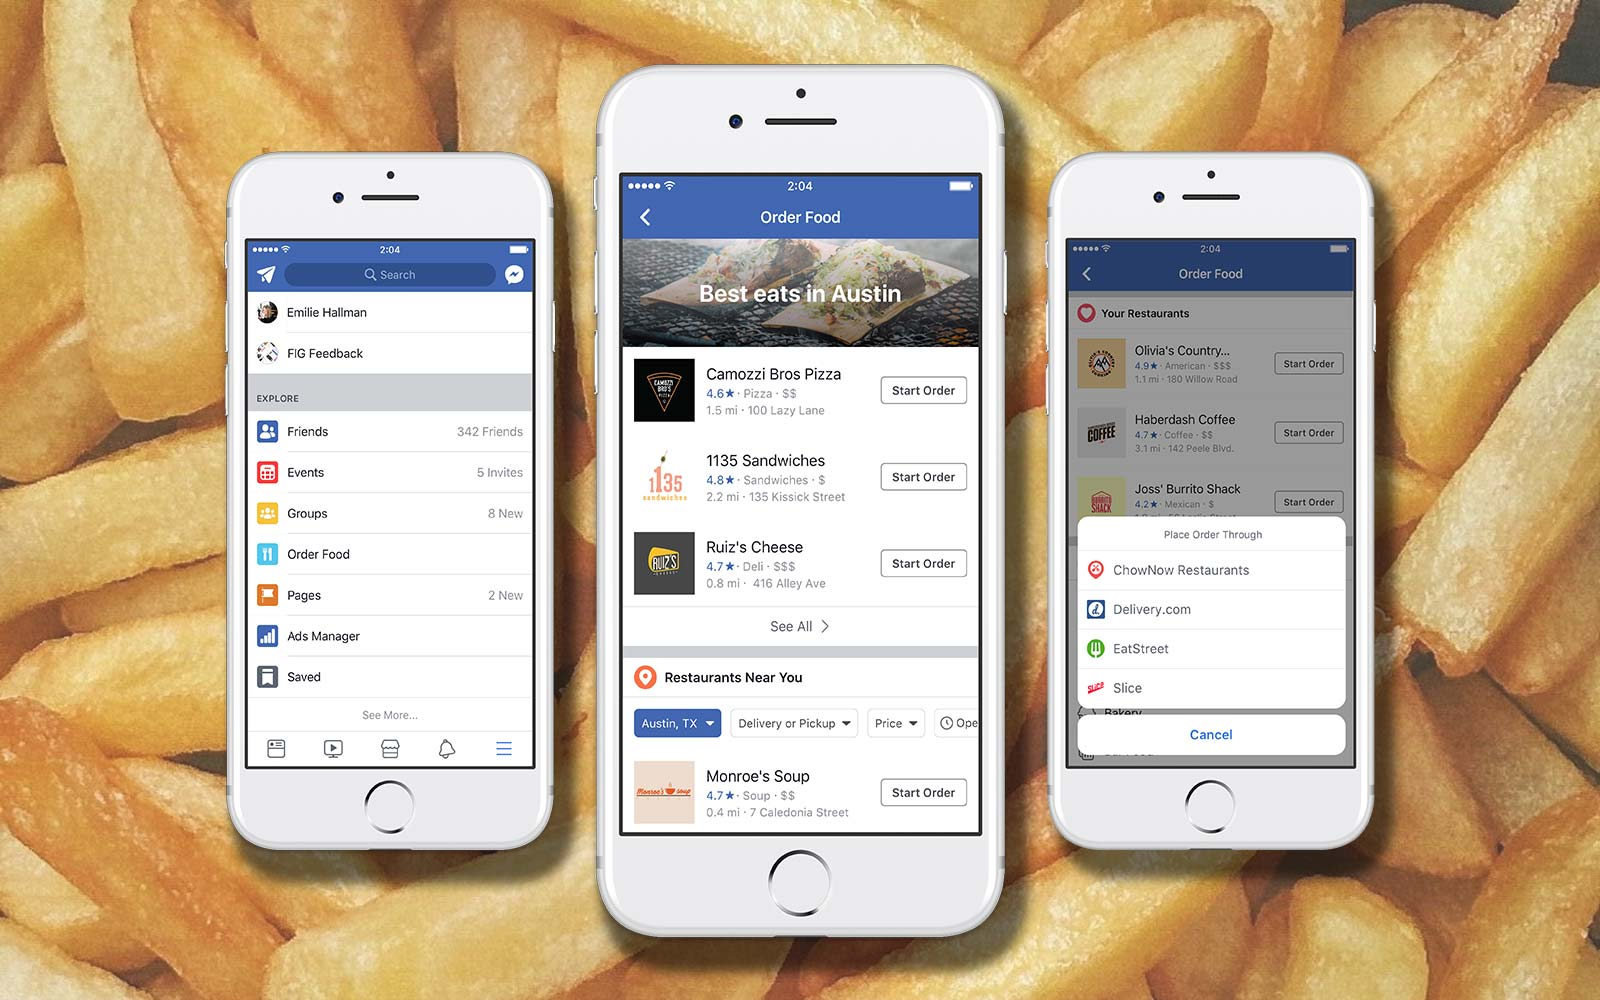 Now You Can Order Food Through the Facebook App